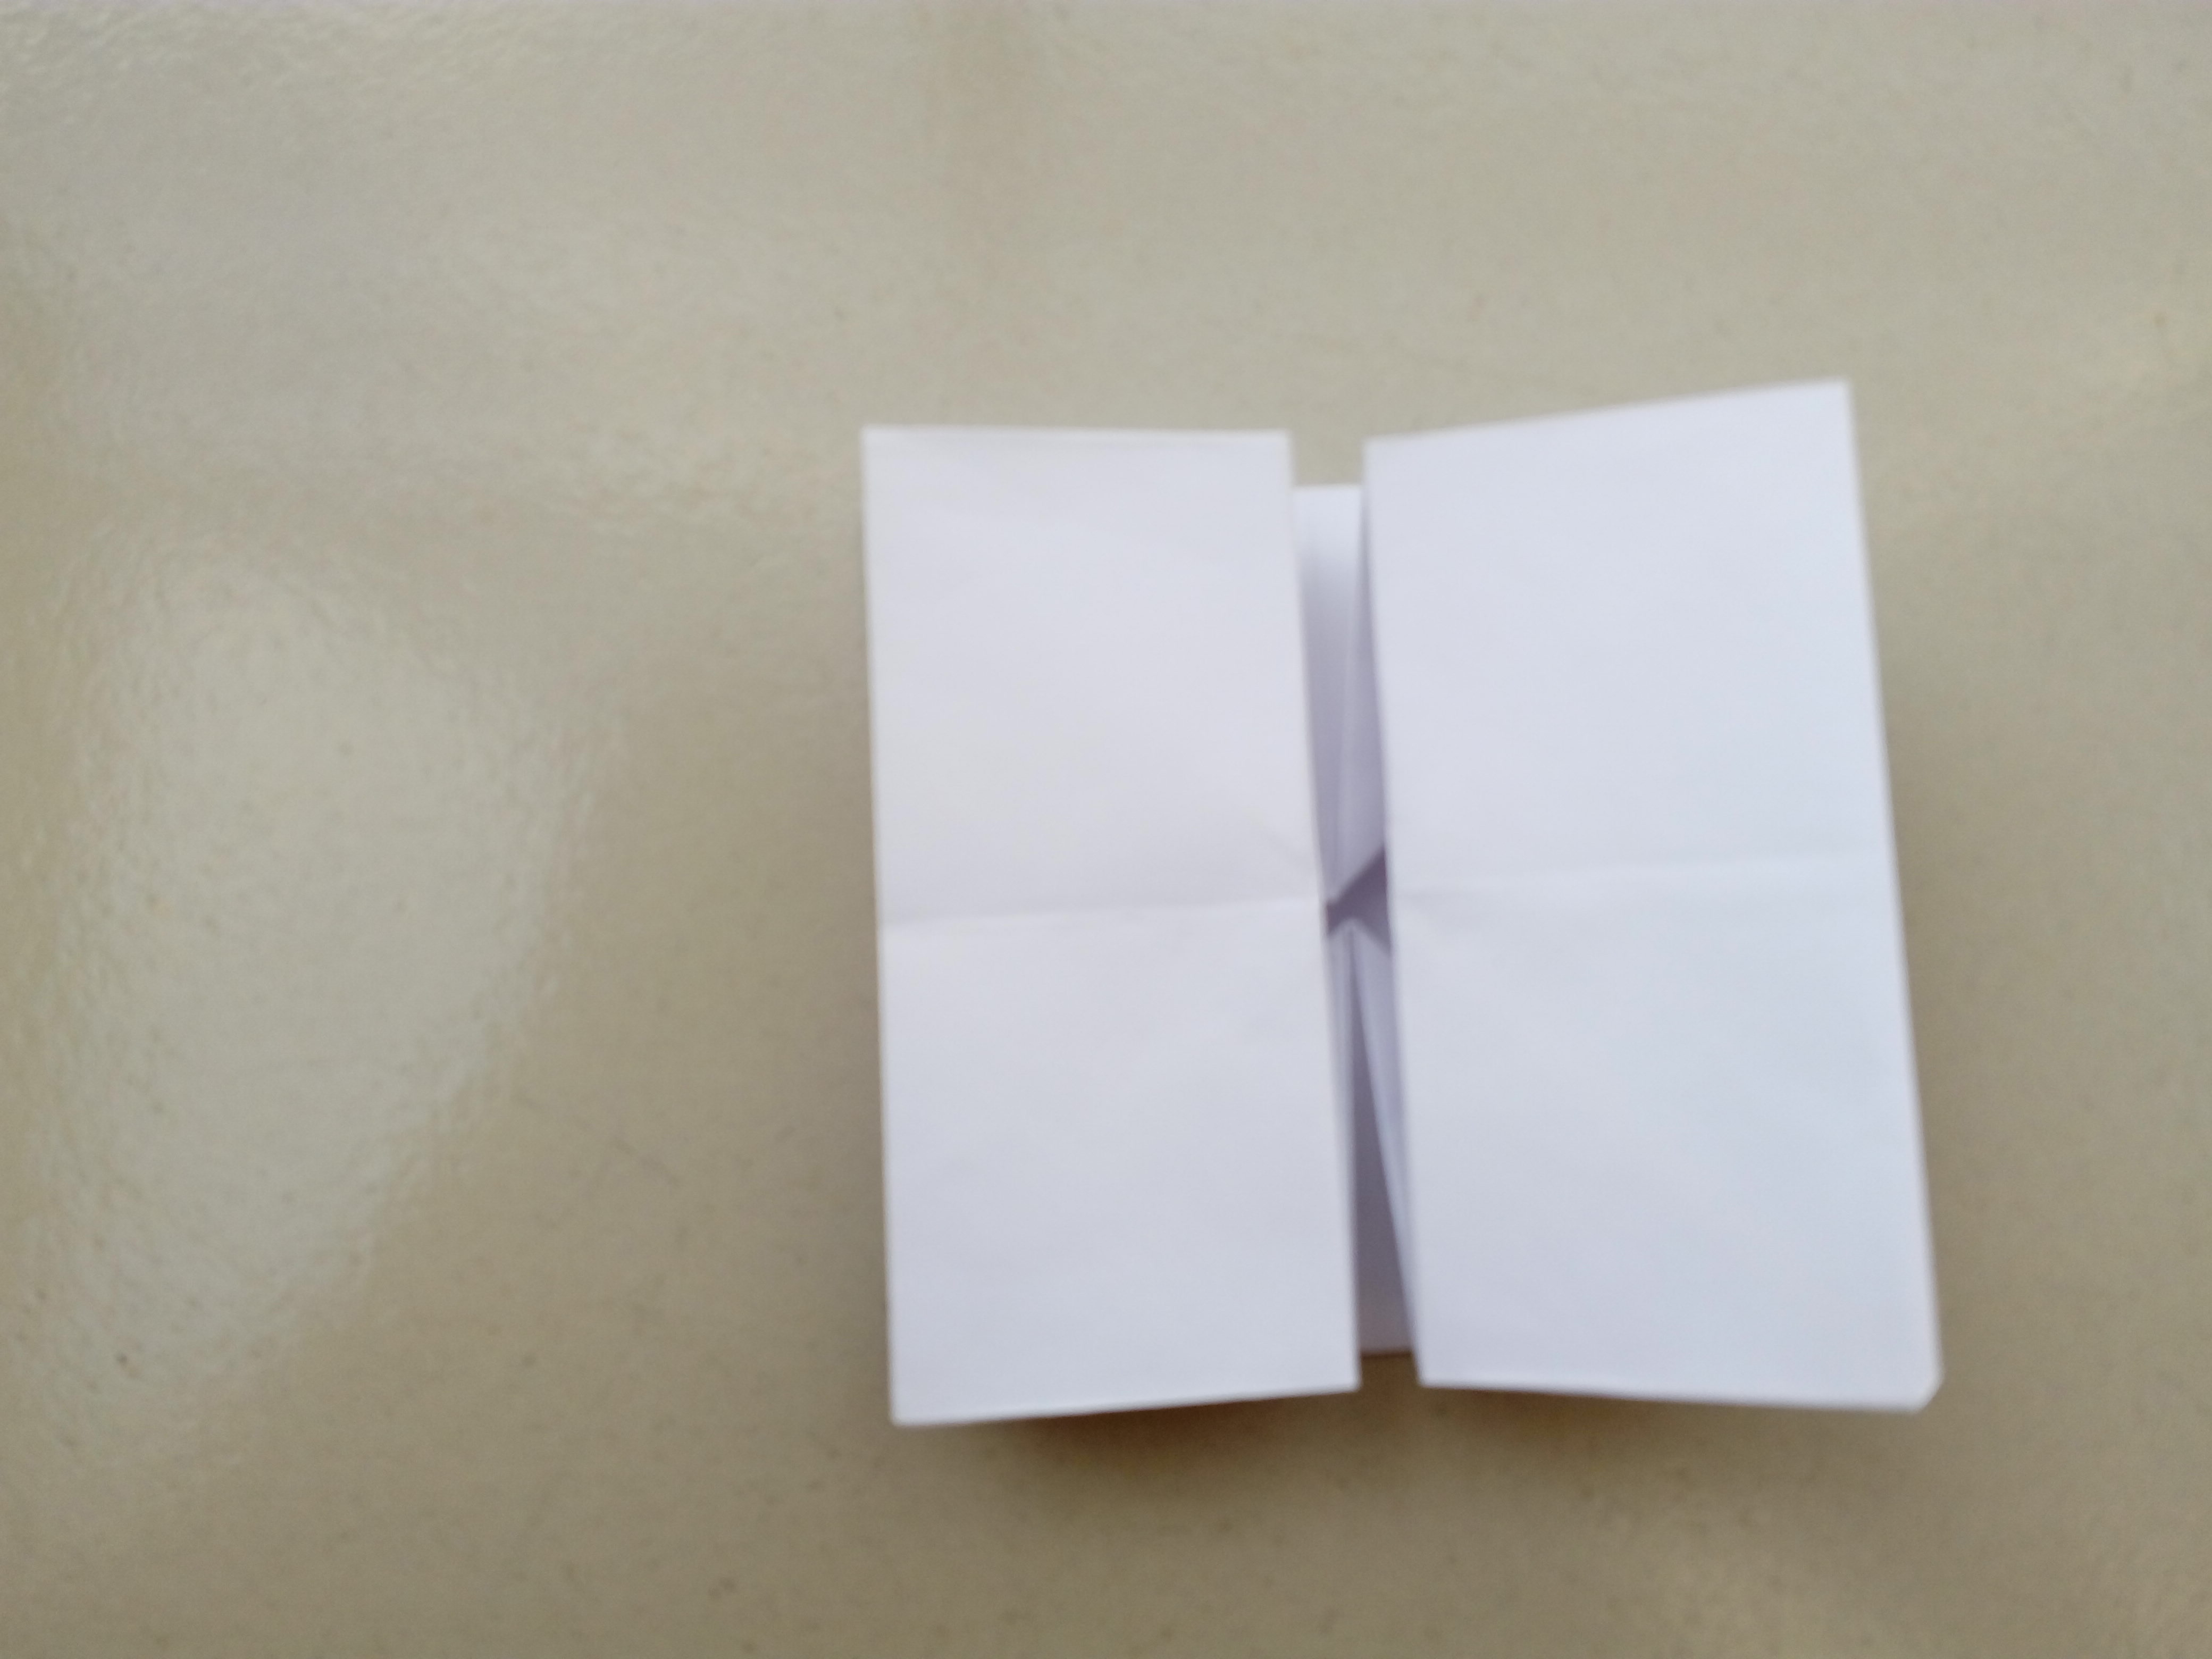 Picture of Now Make a Vertical Fold, Fold Half of the Top Layer Over to the Right.